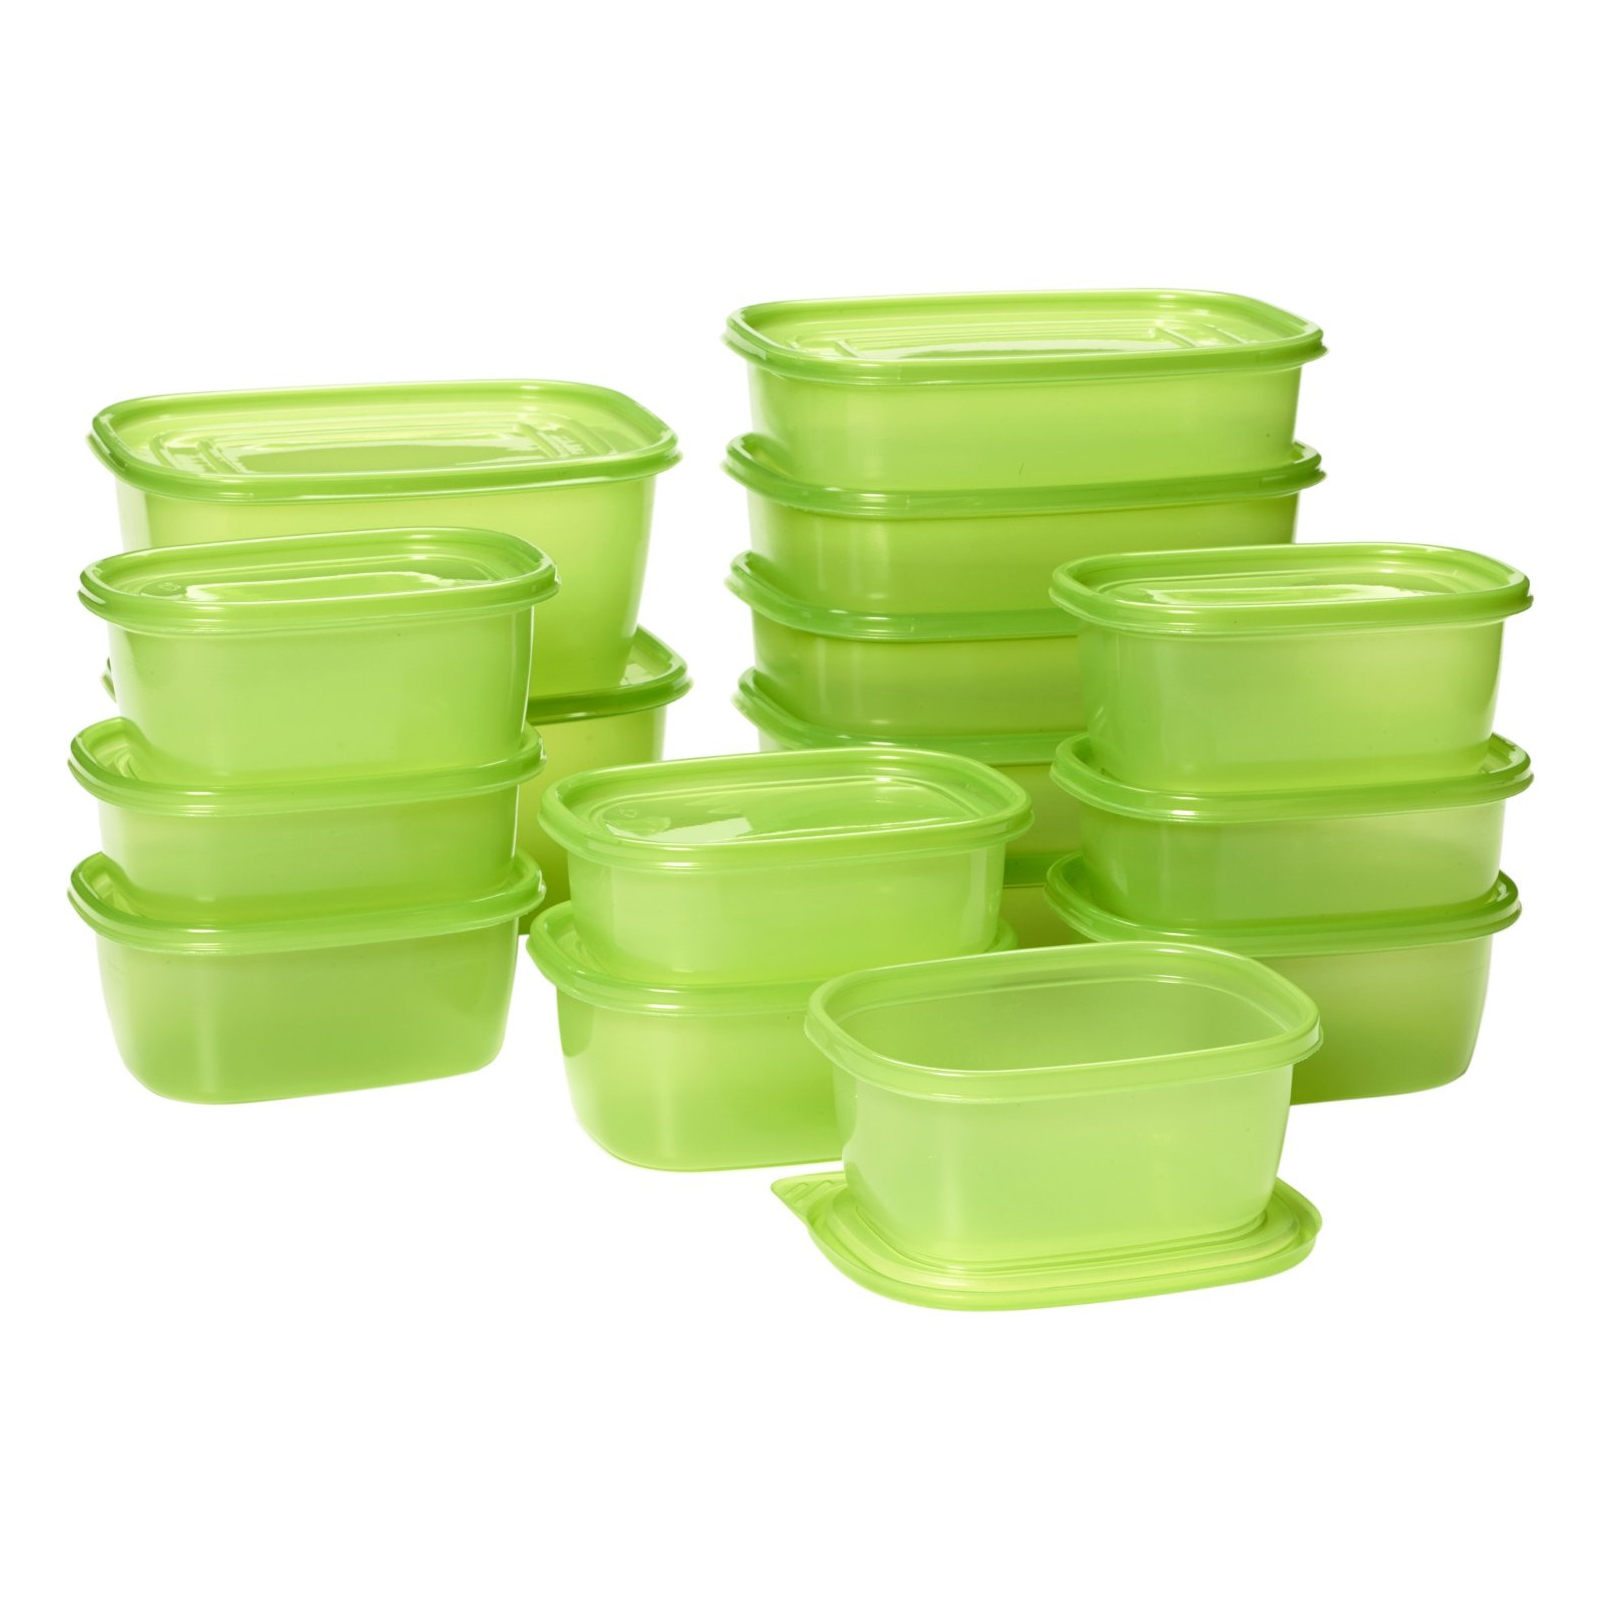 Debbie Meyer UltraLite 32 Piece GreenBoxes Leftover Container Set